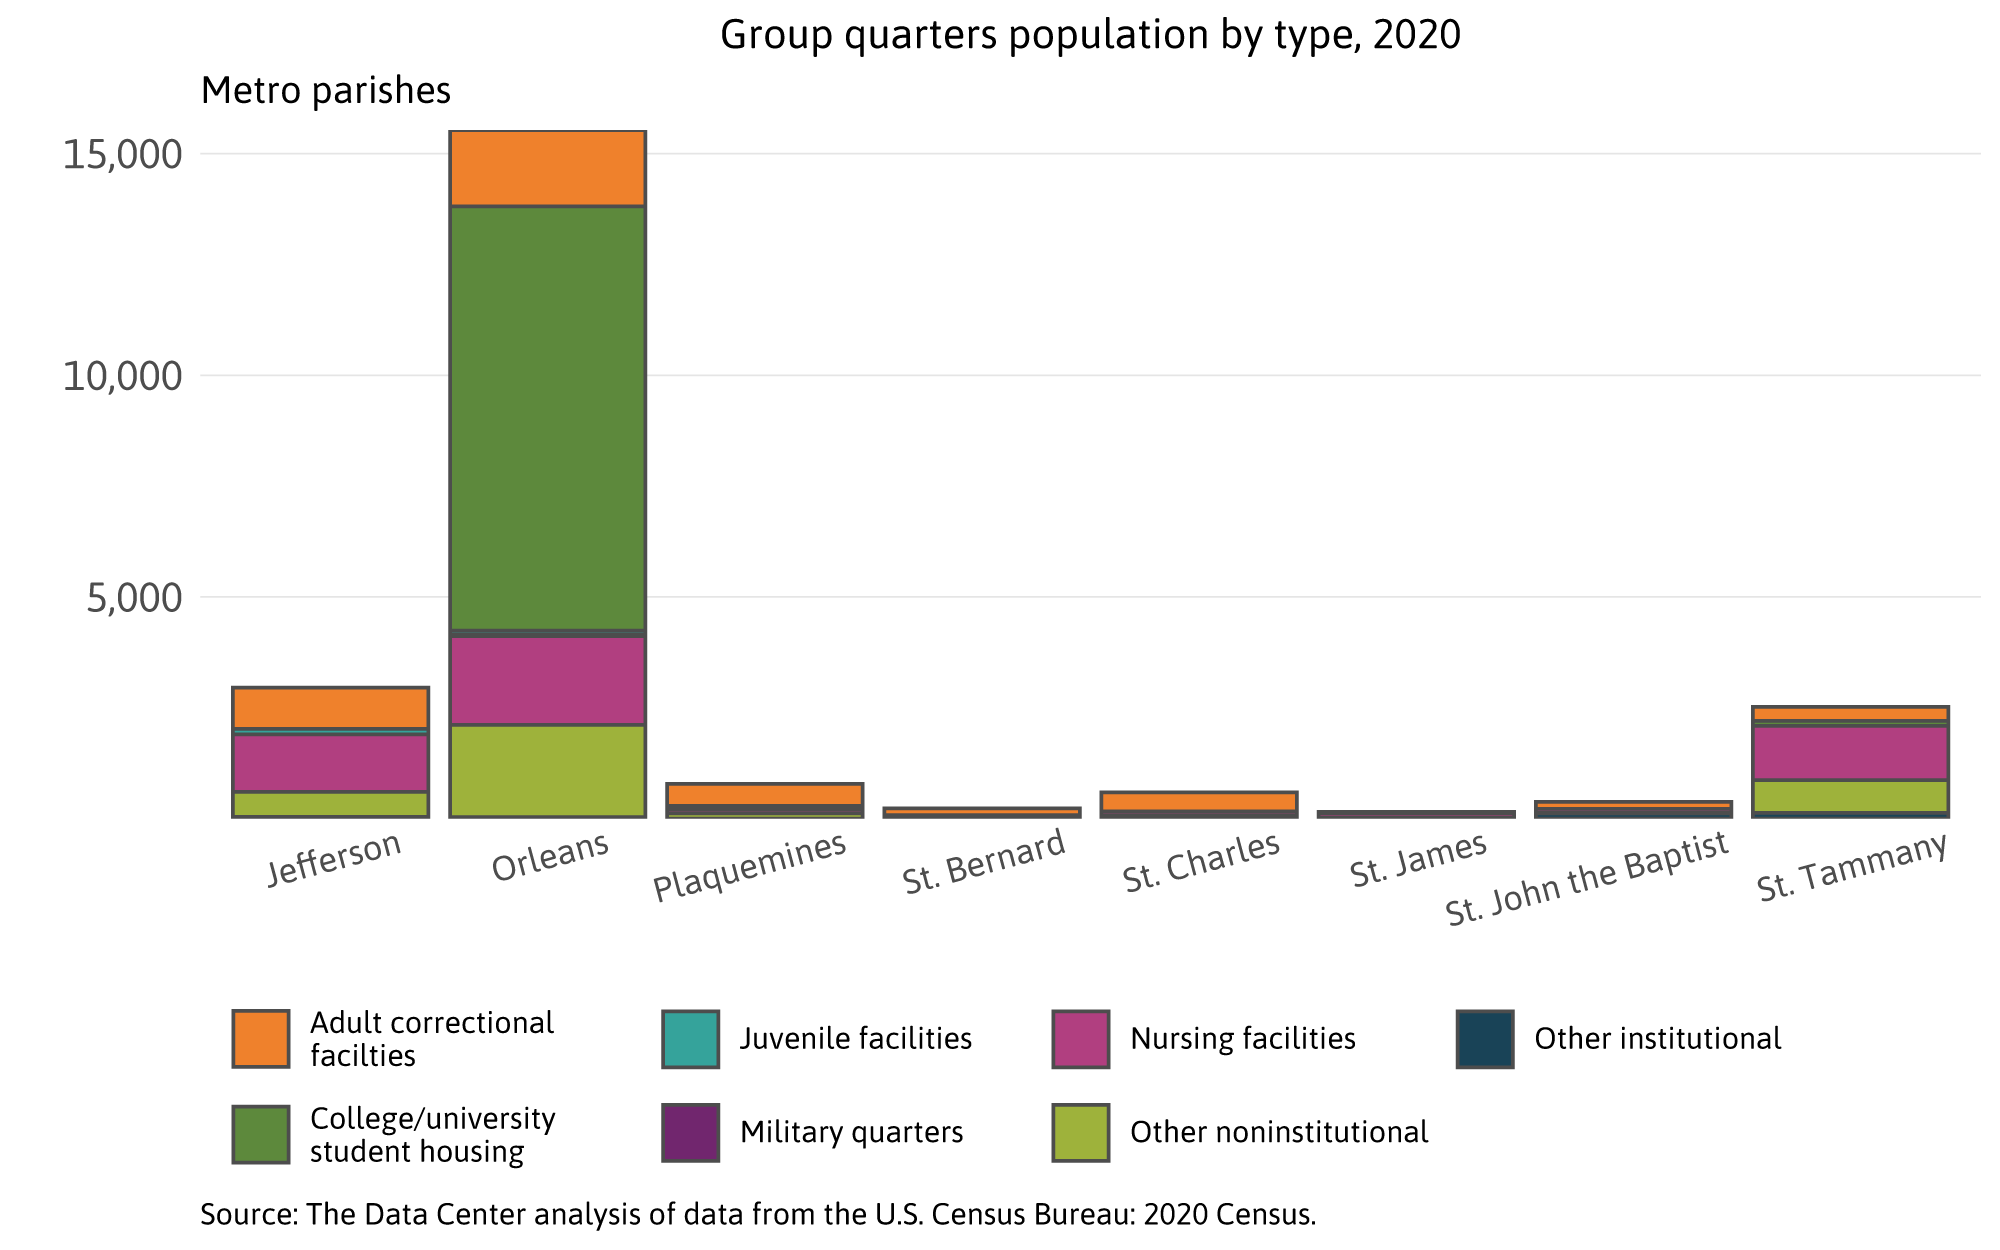 Group quarters population by type